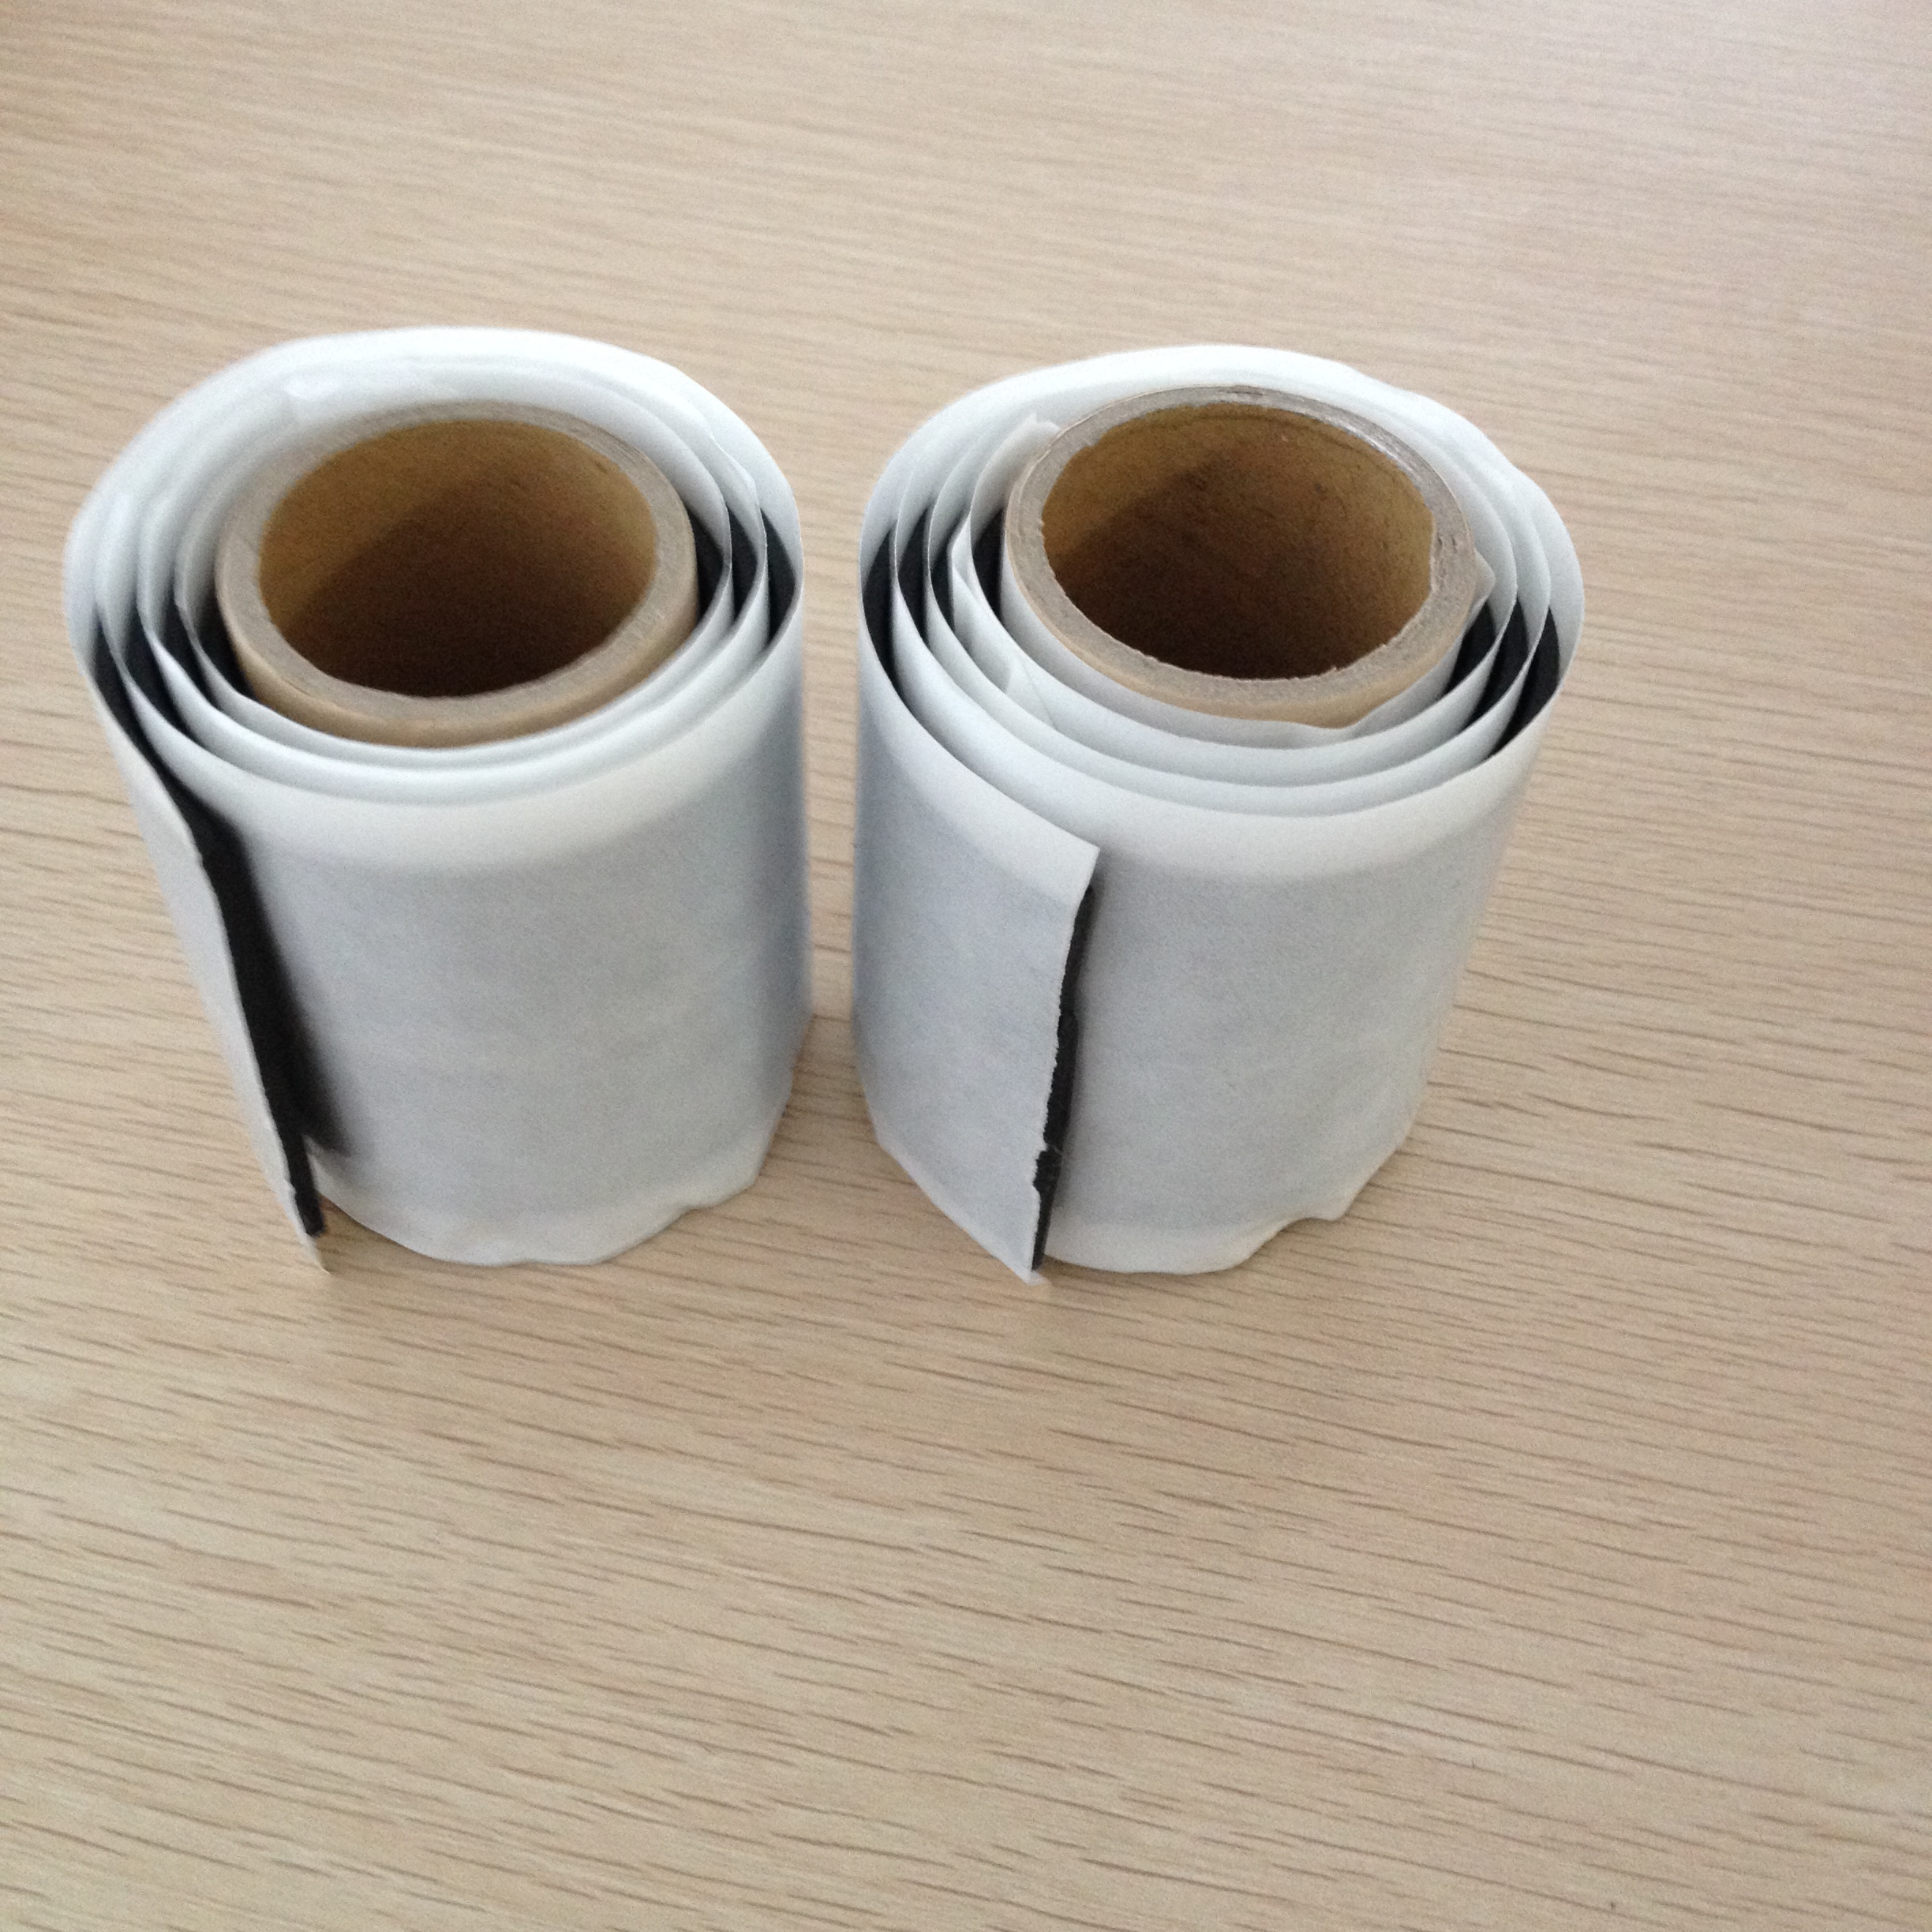 Buy Compare Butyl Rubber Sealing Double Sided Tape Price